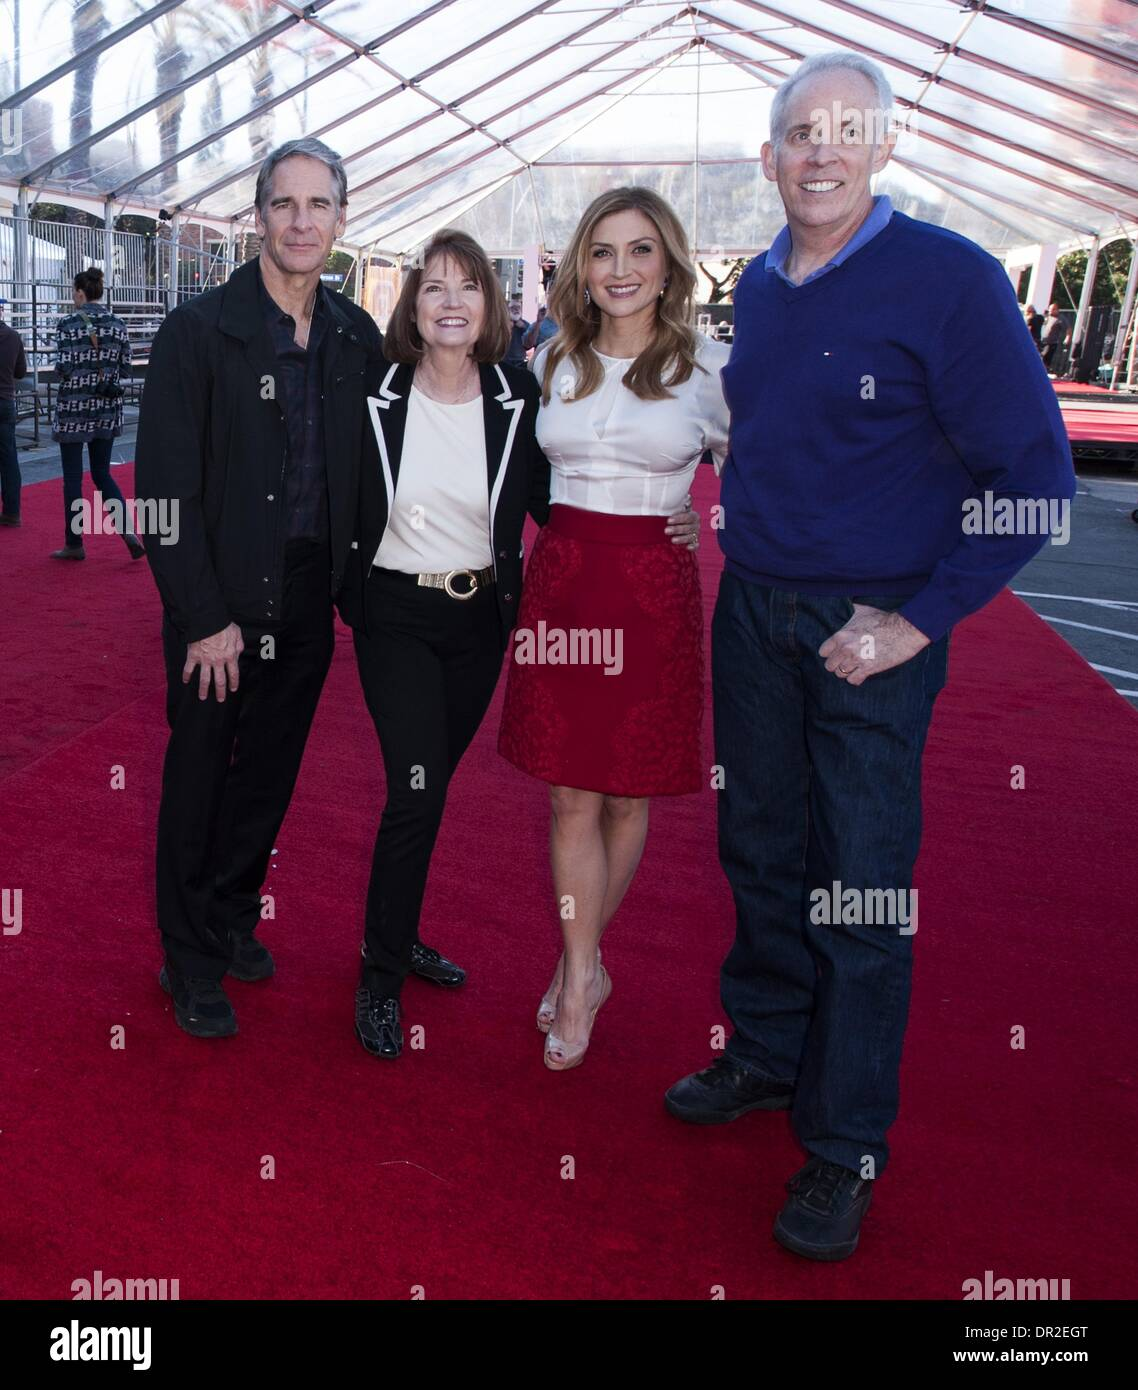 Los Angeles, California, USA. 17th Jan, 2014. The Red Carpet Roll Out Crew for this year's 20th SAG Awards, from left, SAG Award Committee Member, Scott Bakula , SAG Awards Executive Producer, Kathy Connell, SAG Awards Social Media Ambassador Sasha Alexander, and SAG Award Committee Member Daryl Anderson.----The Screen Actors Guild made their final preparations on Friday morning January 17, 2014, for what will be this year's 20th SAG Awards event Saturday, January 18, 2014 at the Shrine Auditorium in Los Angeles. Set-up crews pulled out the red carpet as they finalized lighting and place tv - Stock Image